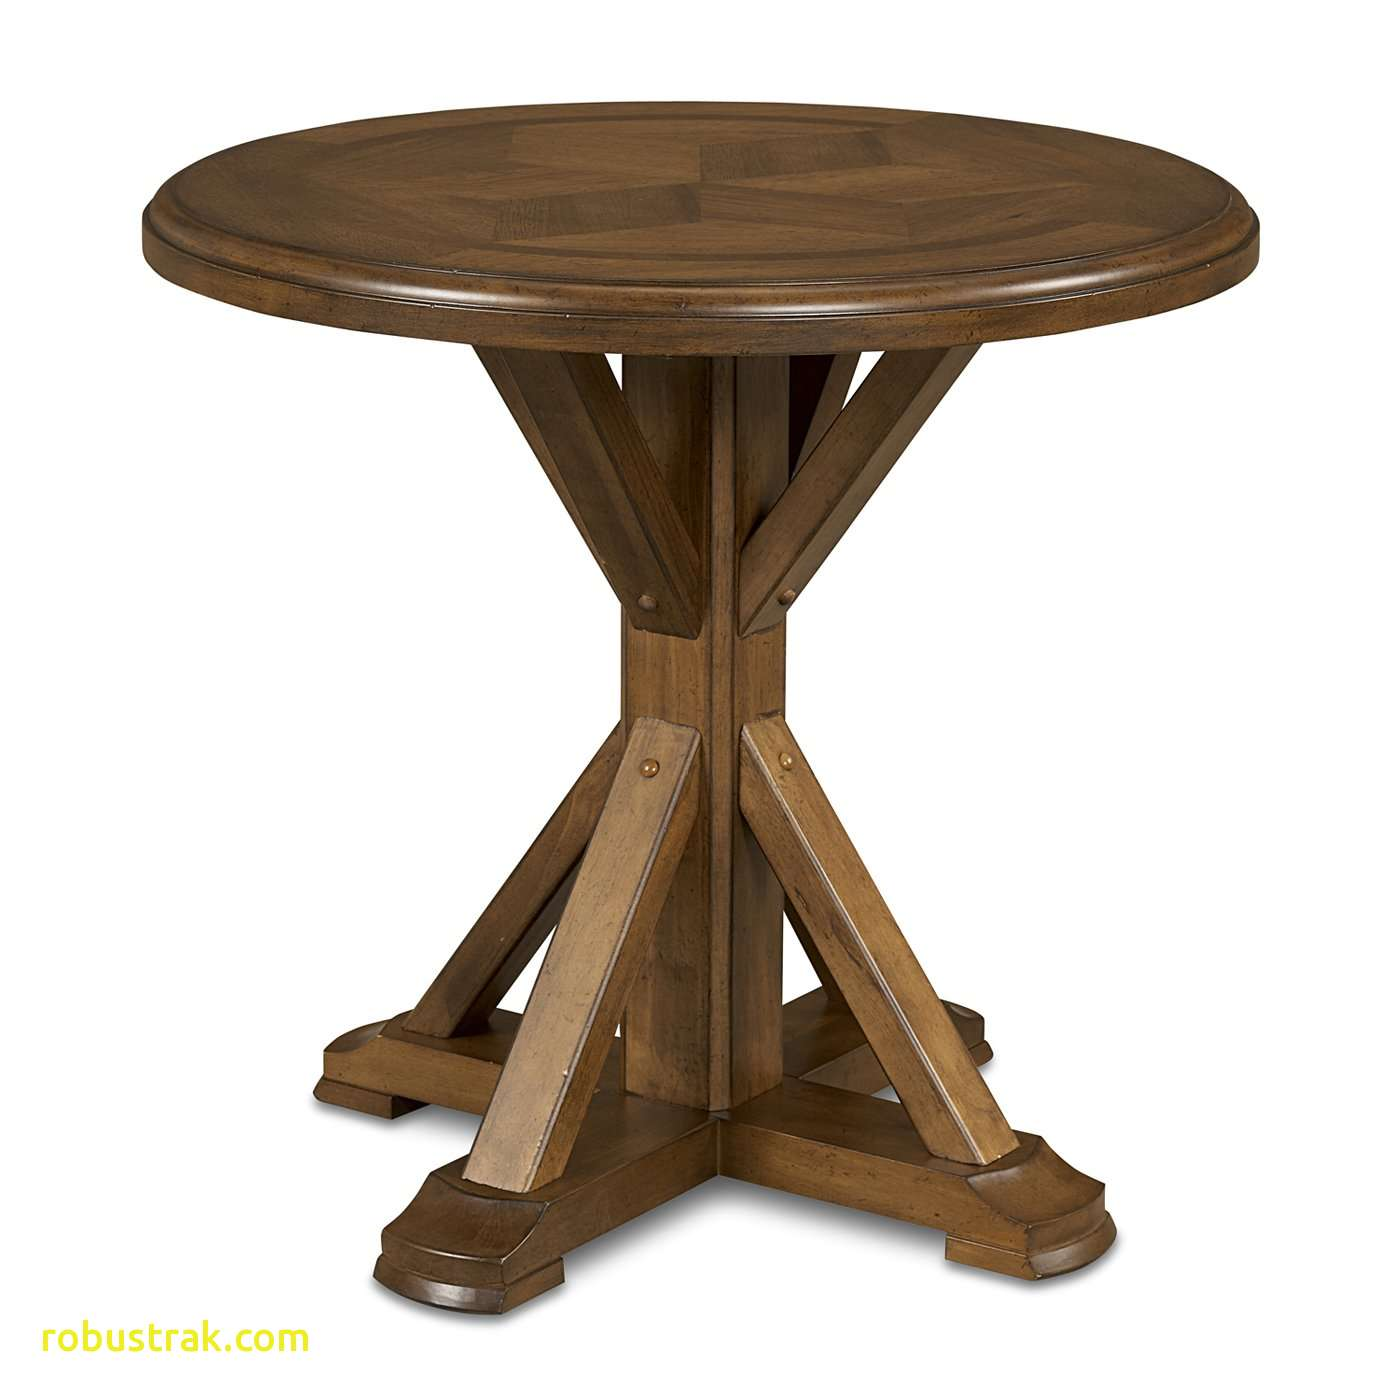 inch high accent tables beautiful home furniture copper ridge round end table designs diy clamp lamp tablecloth for white glass coffee set brown pottery barn bar west elm bedroom